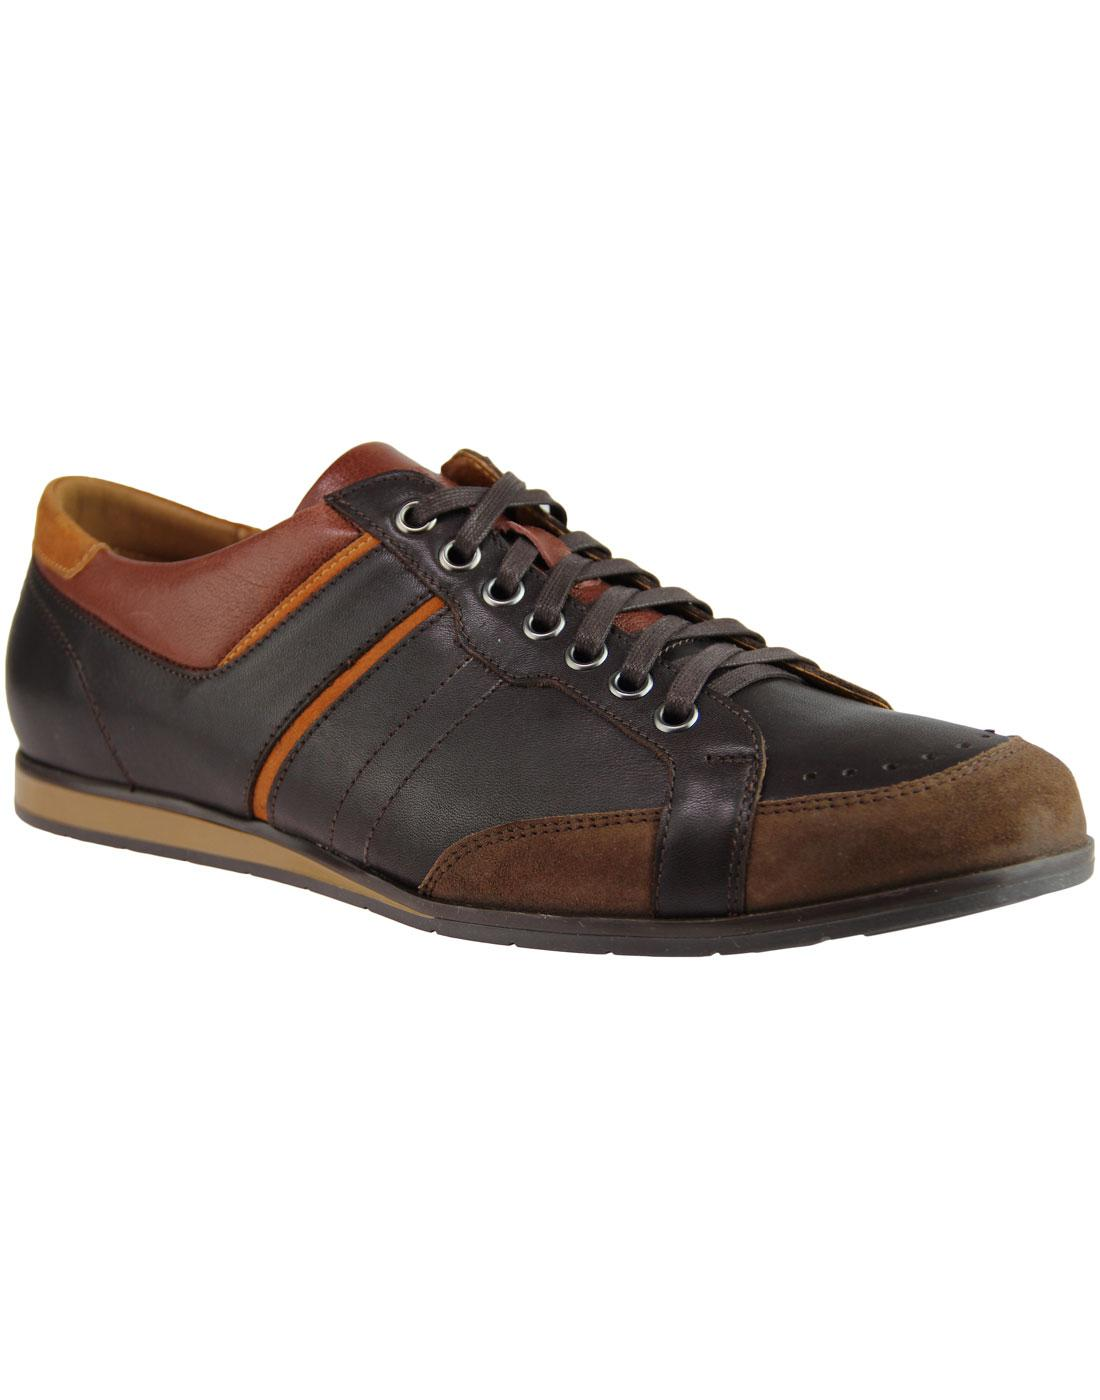 LACUZZO Retro 1970s Mod Casual Trainer Shoes BROWN